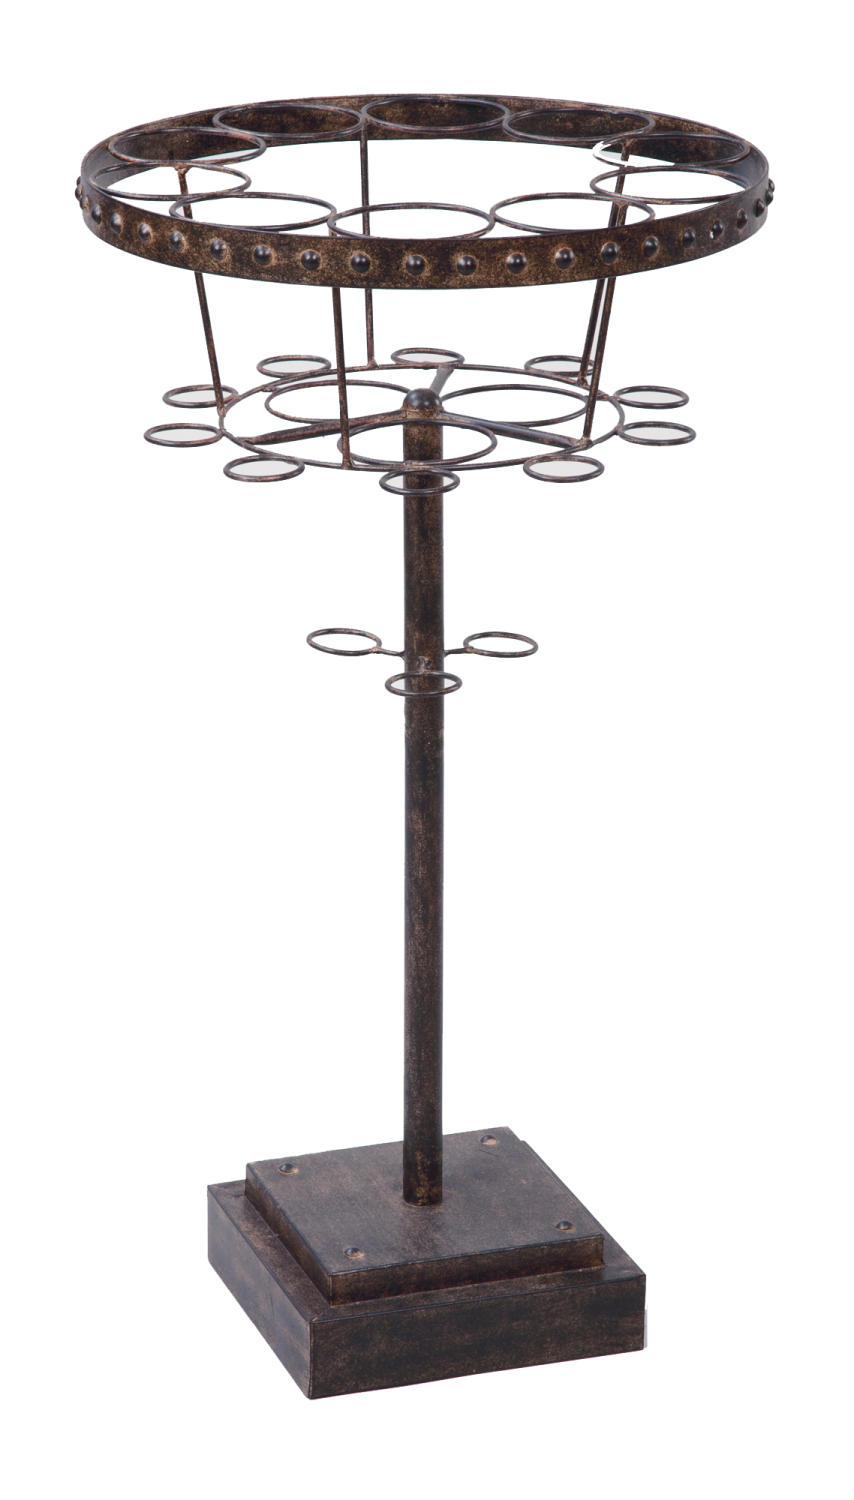 13-Place Wine Bottle Stand  (Wine Accessories)